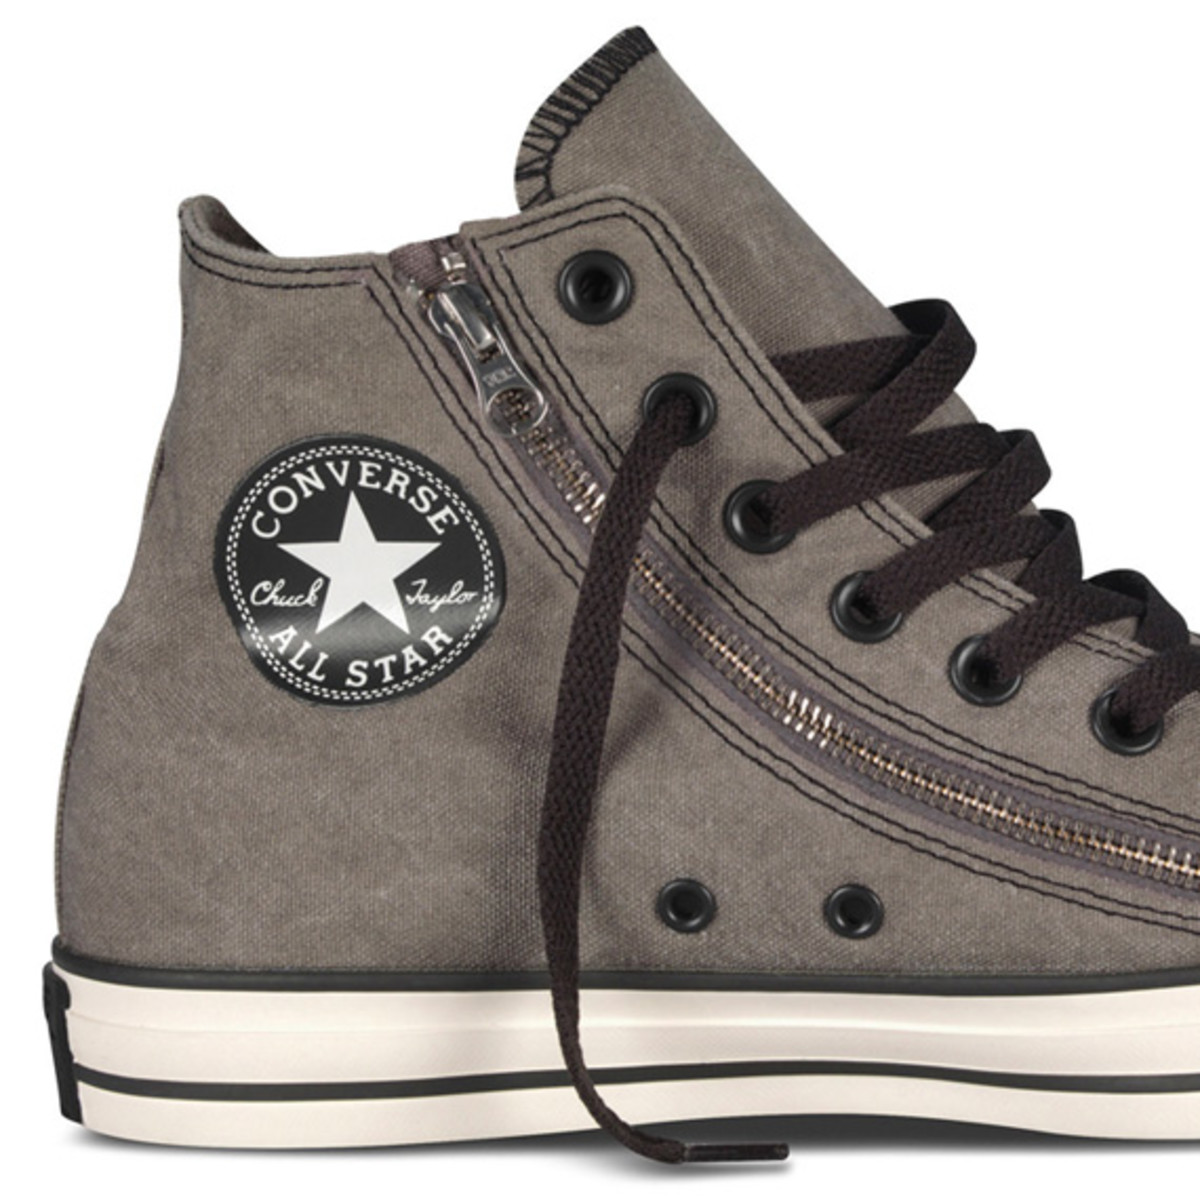 CONVERSE Chuck Taylor All Star Double Zip - Fall 2013 Collection - 2